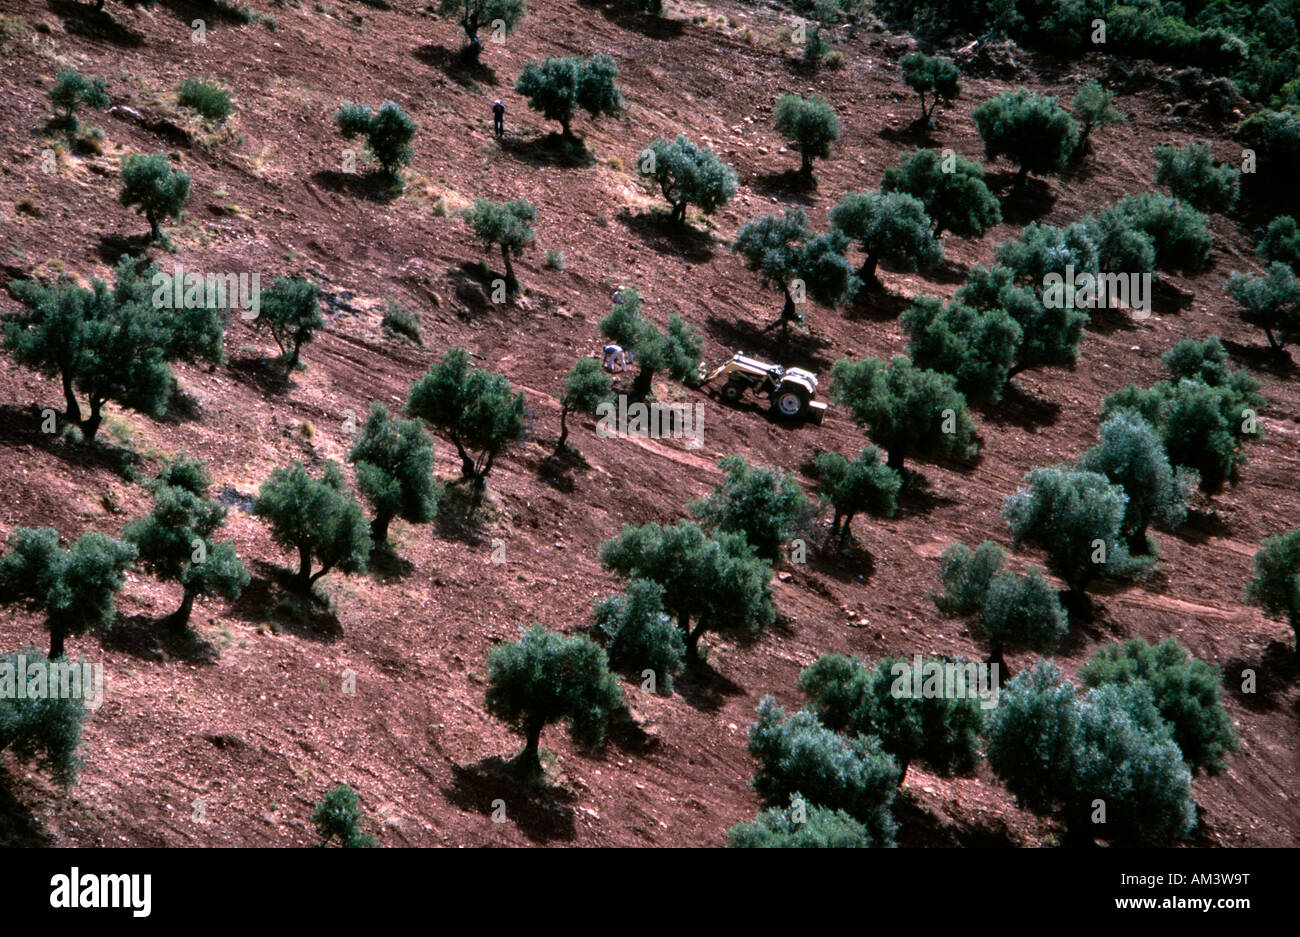 olive groves jaen stockfotos olive groves jaen bilder seite 2 alamy. Black Bedroom Furniture Sets. Home Design Ideas